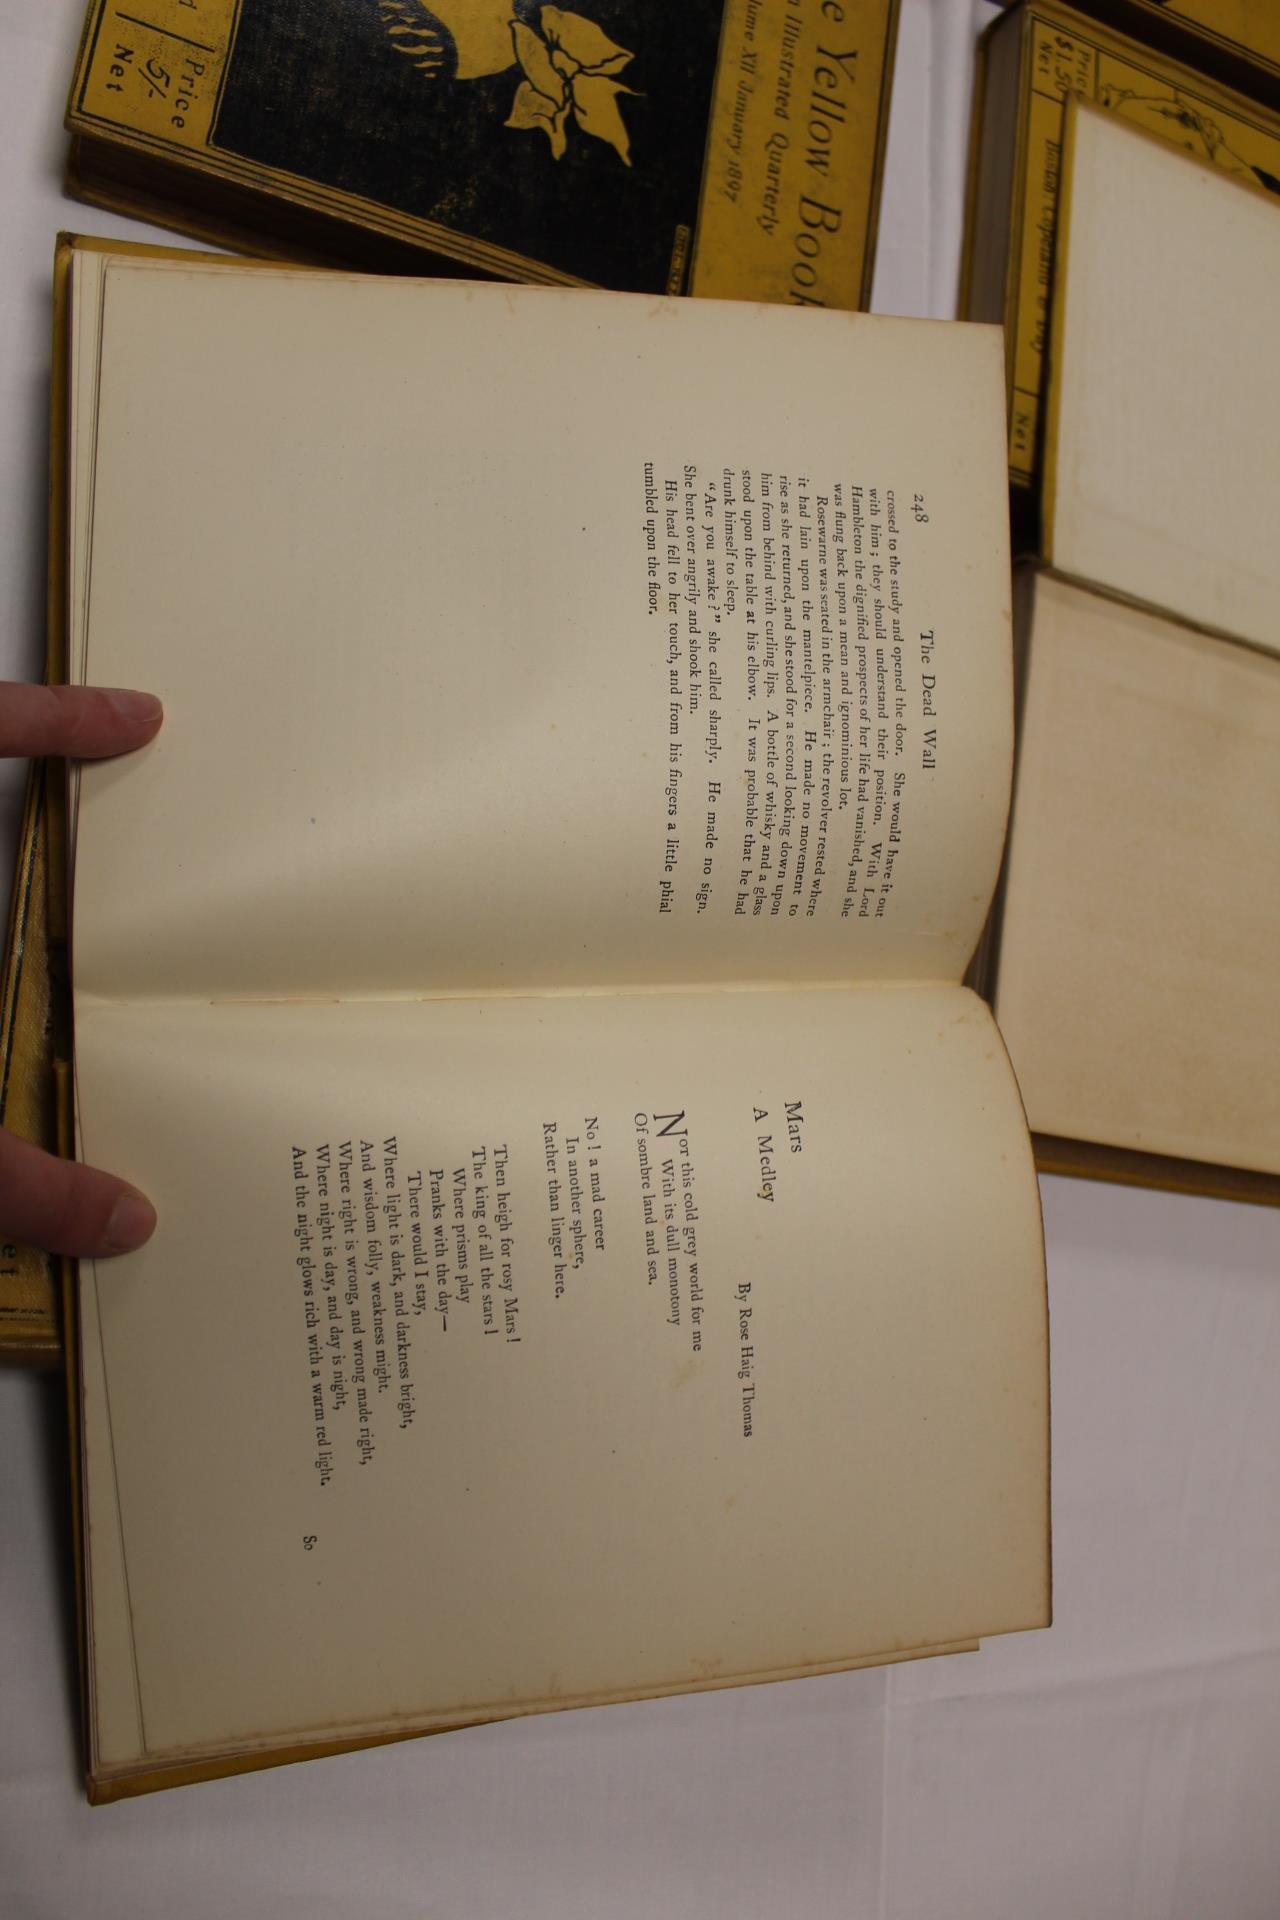 THE YELLOW BOOK.An Illustrated Quarterly. A set of 13 vols., many fine illus. Small quarto. - Image 34 of 45